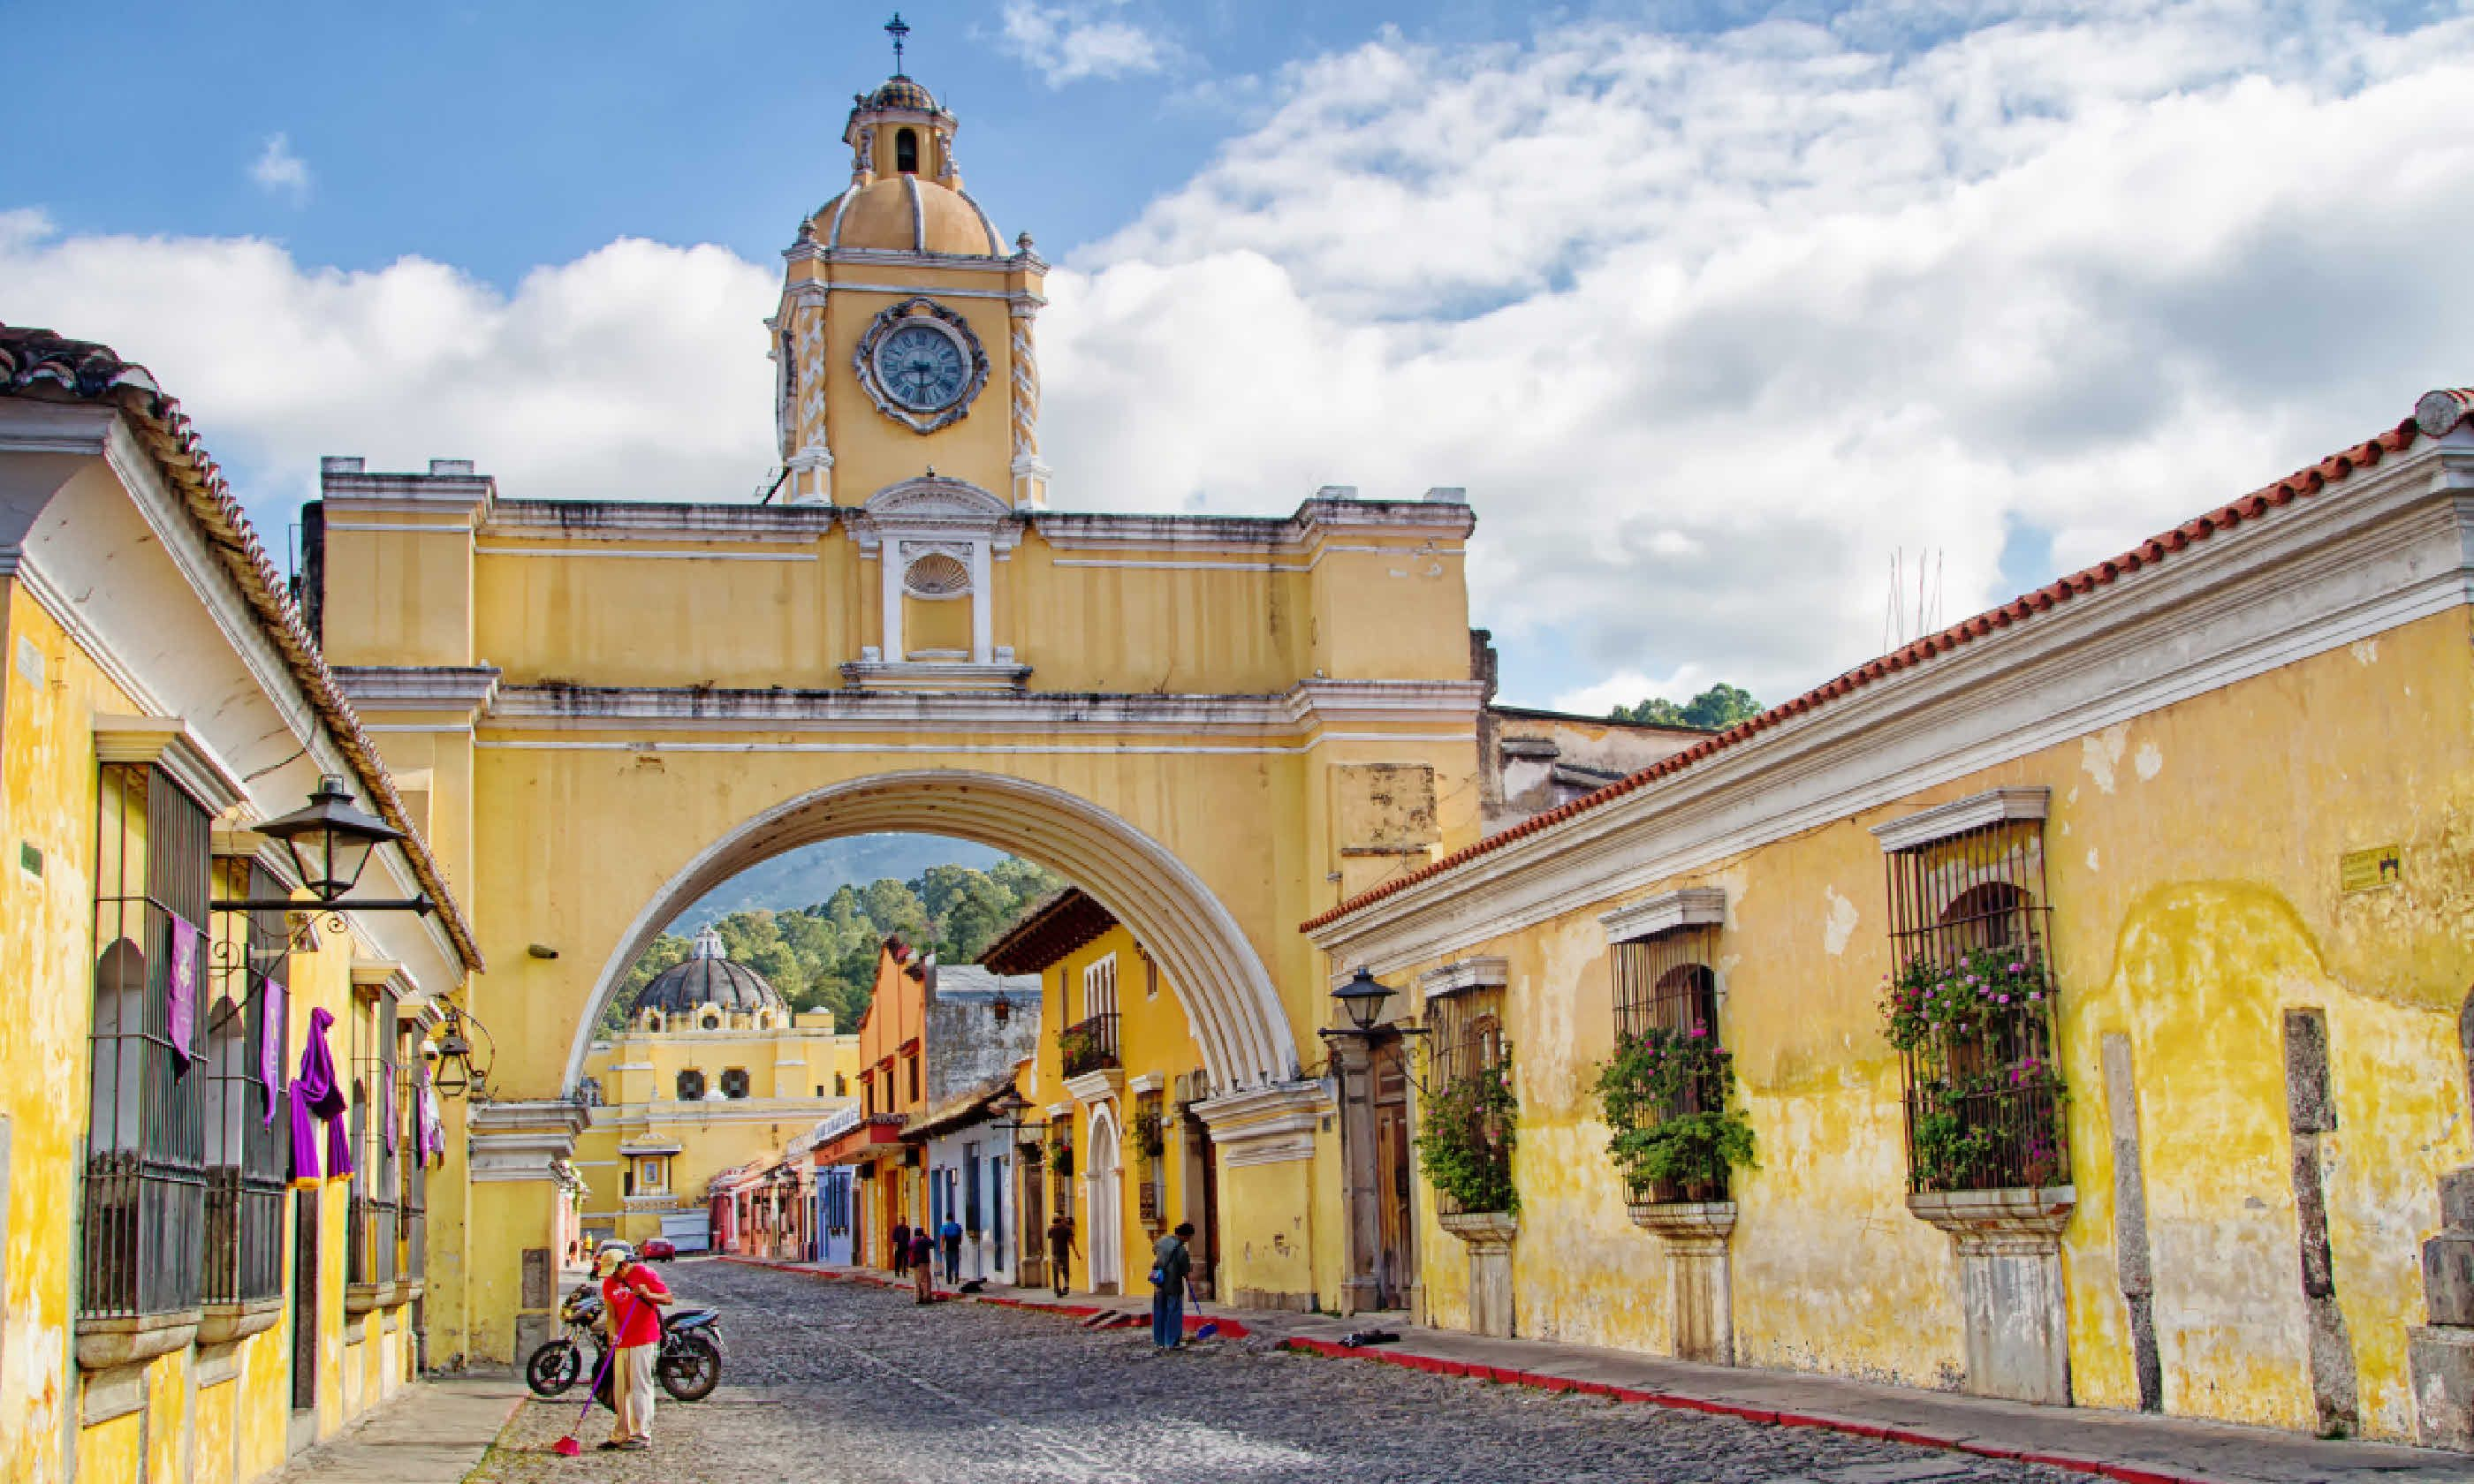 Colourful colonial buildings in Antigua, Guatemala (Shutterstock)